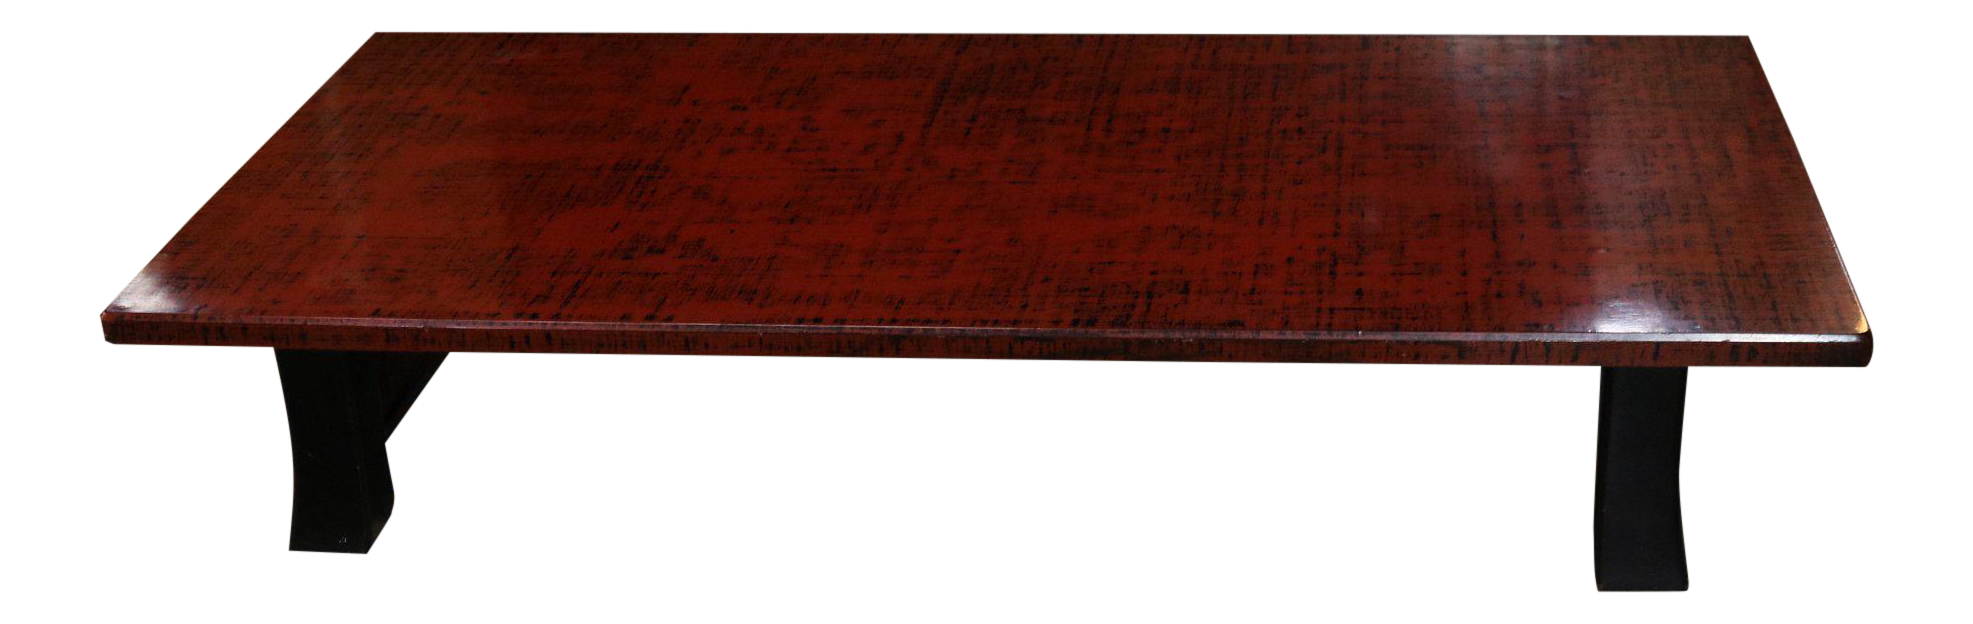 Japanese Red Lacquer Coffee Table With Black Legs